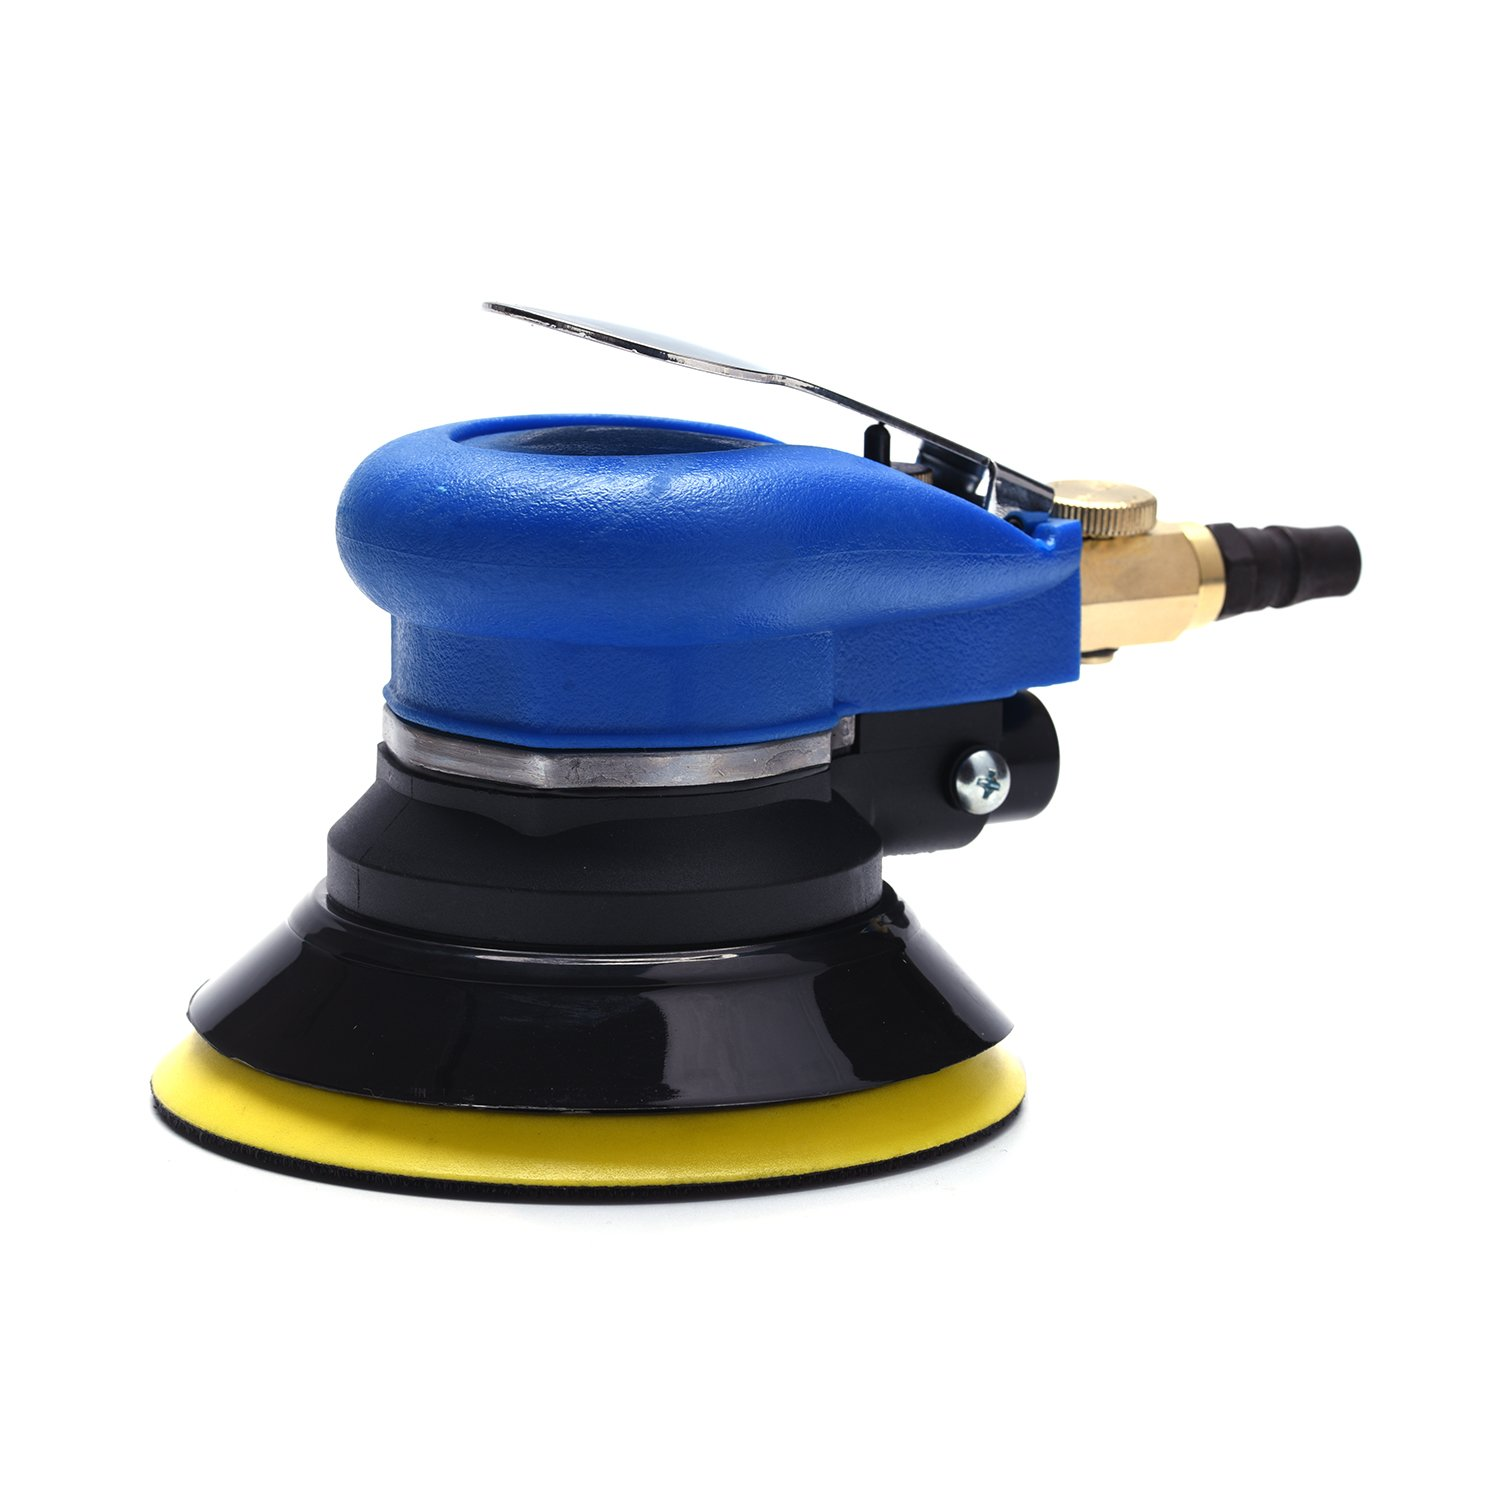 Air Random Orbital Sander 5'' Dual Action Palm Sander, Hook and Loop Air Powered and Swirl Free by ZHONG AN